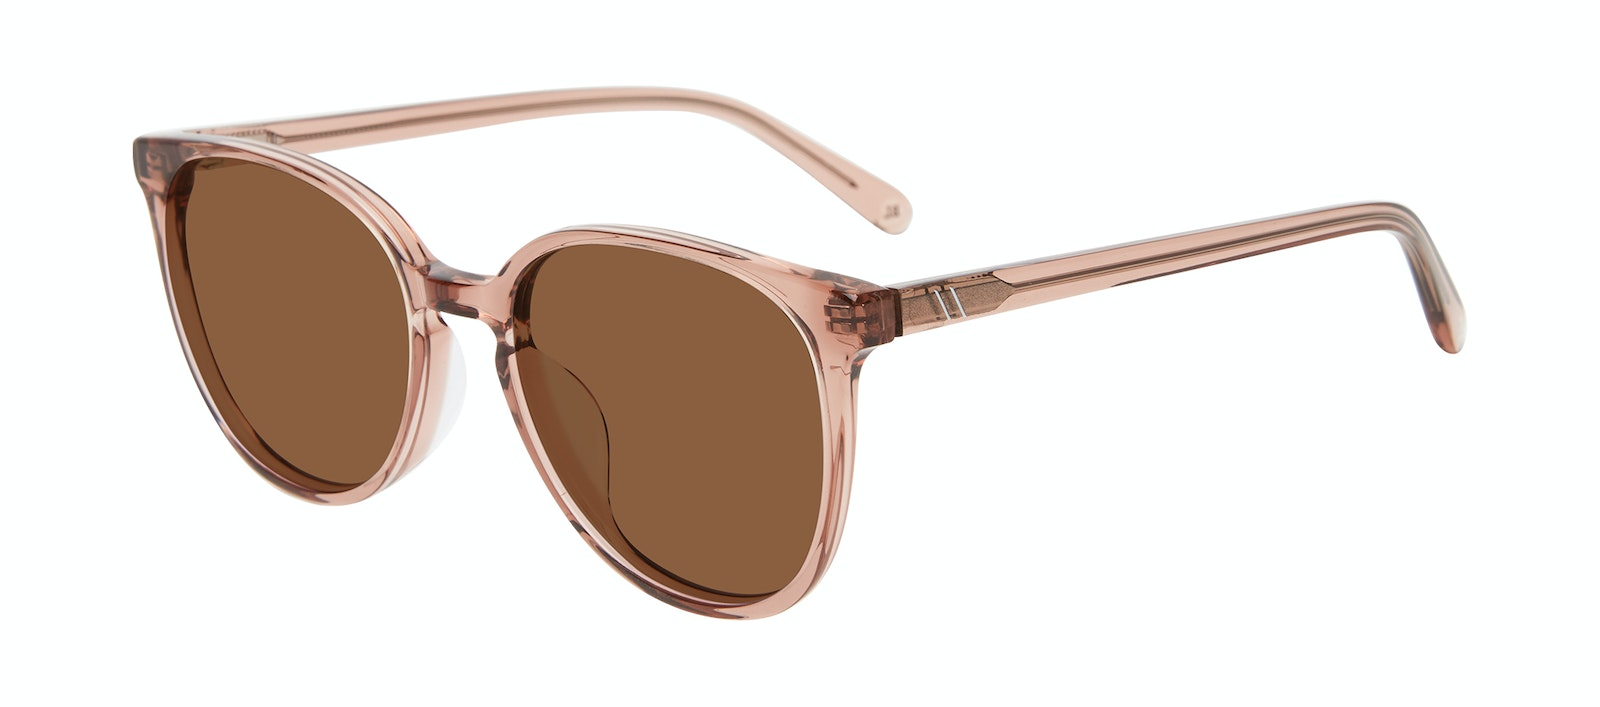 Affordable Fashion Glasses Round Sunglasses Women Impression Rose Tilt